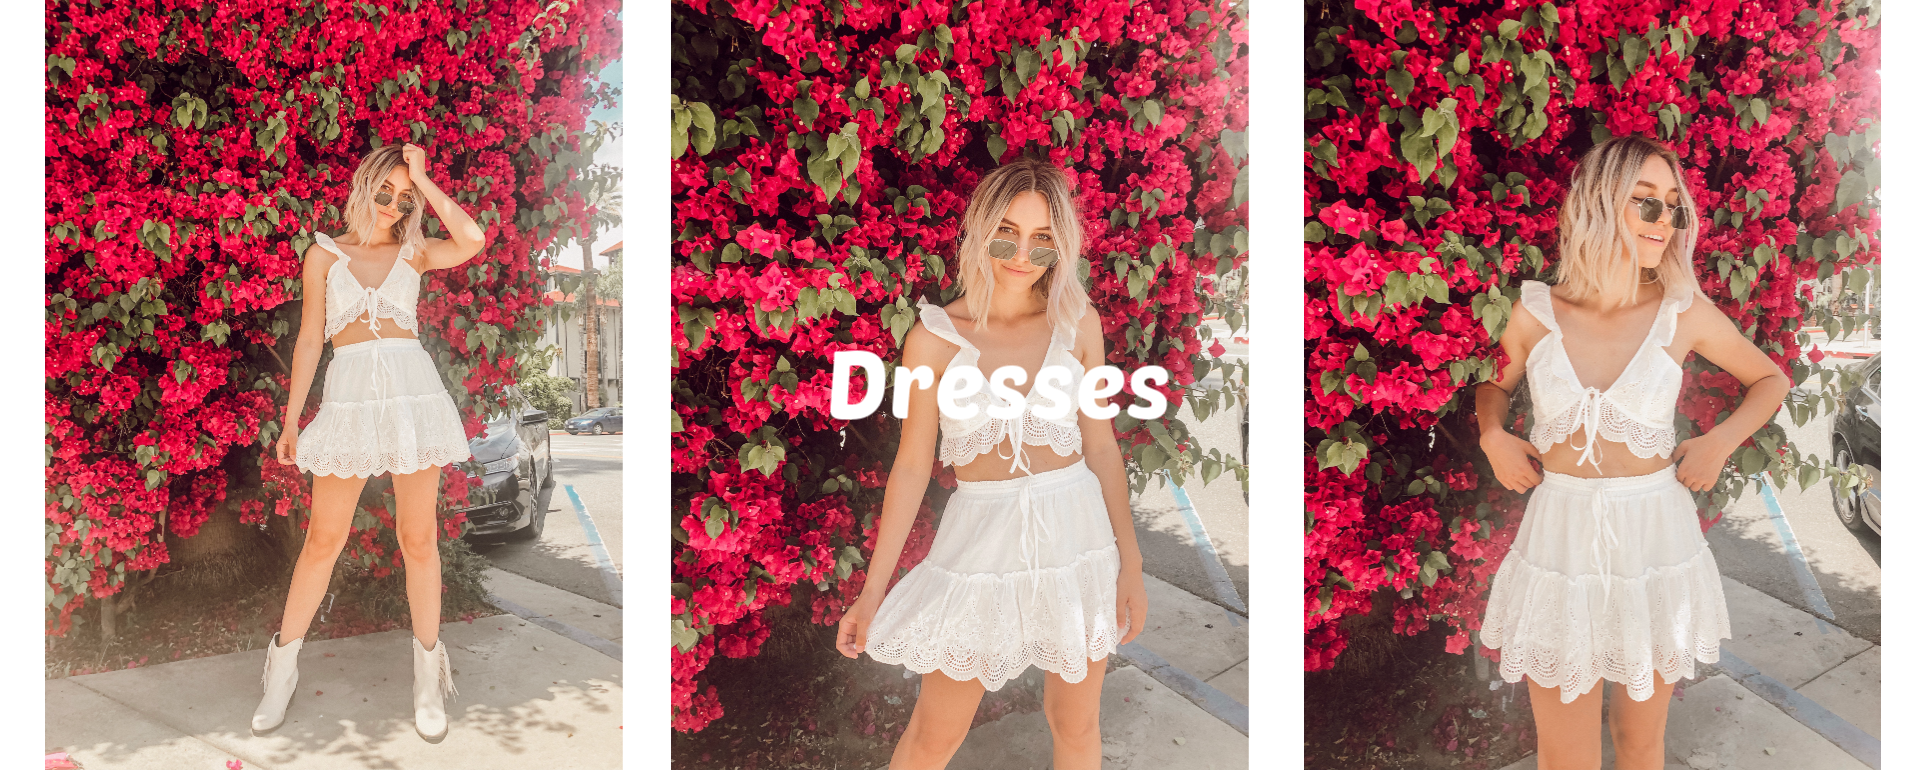 Boho Dresses, Cute Boho Dresses, Casual Dress, Cute Dresses, Beachy Dresses